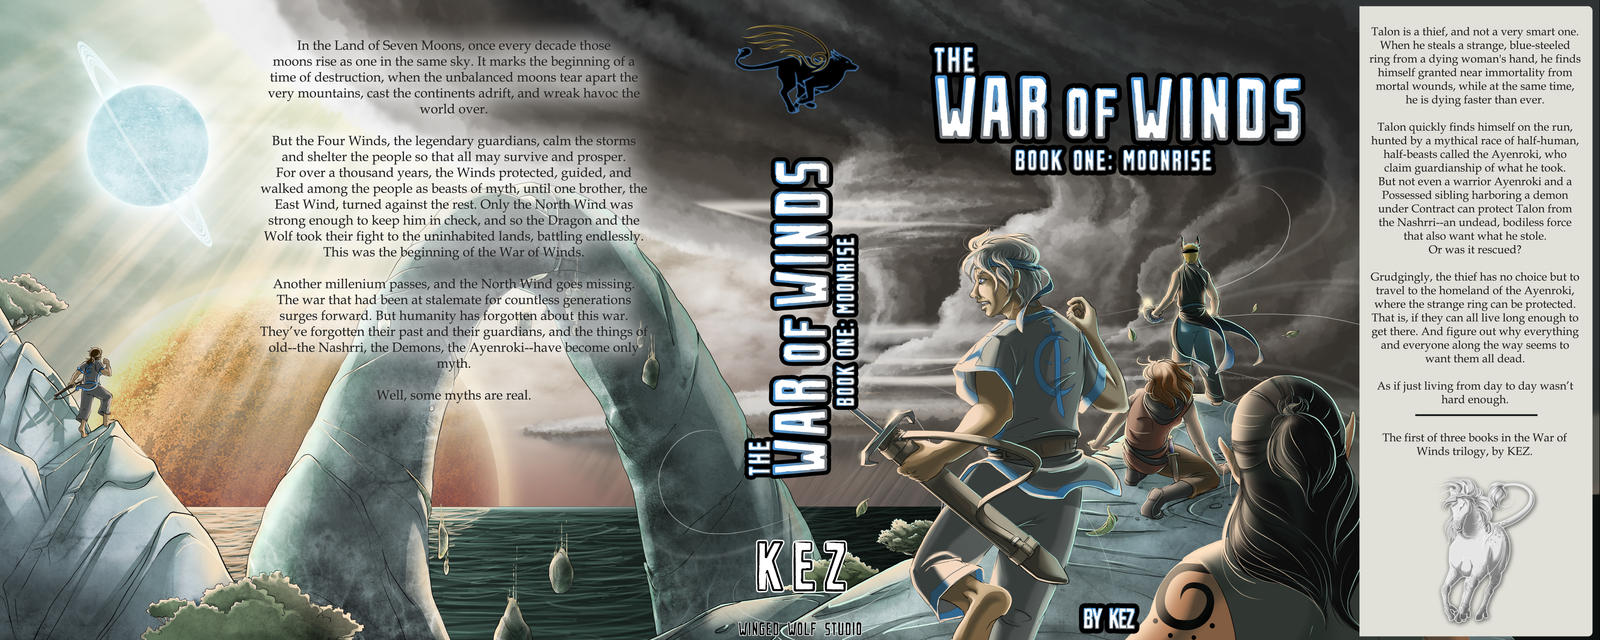 War of Winds Cover (words)